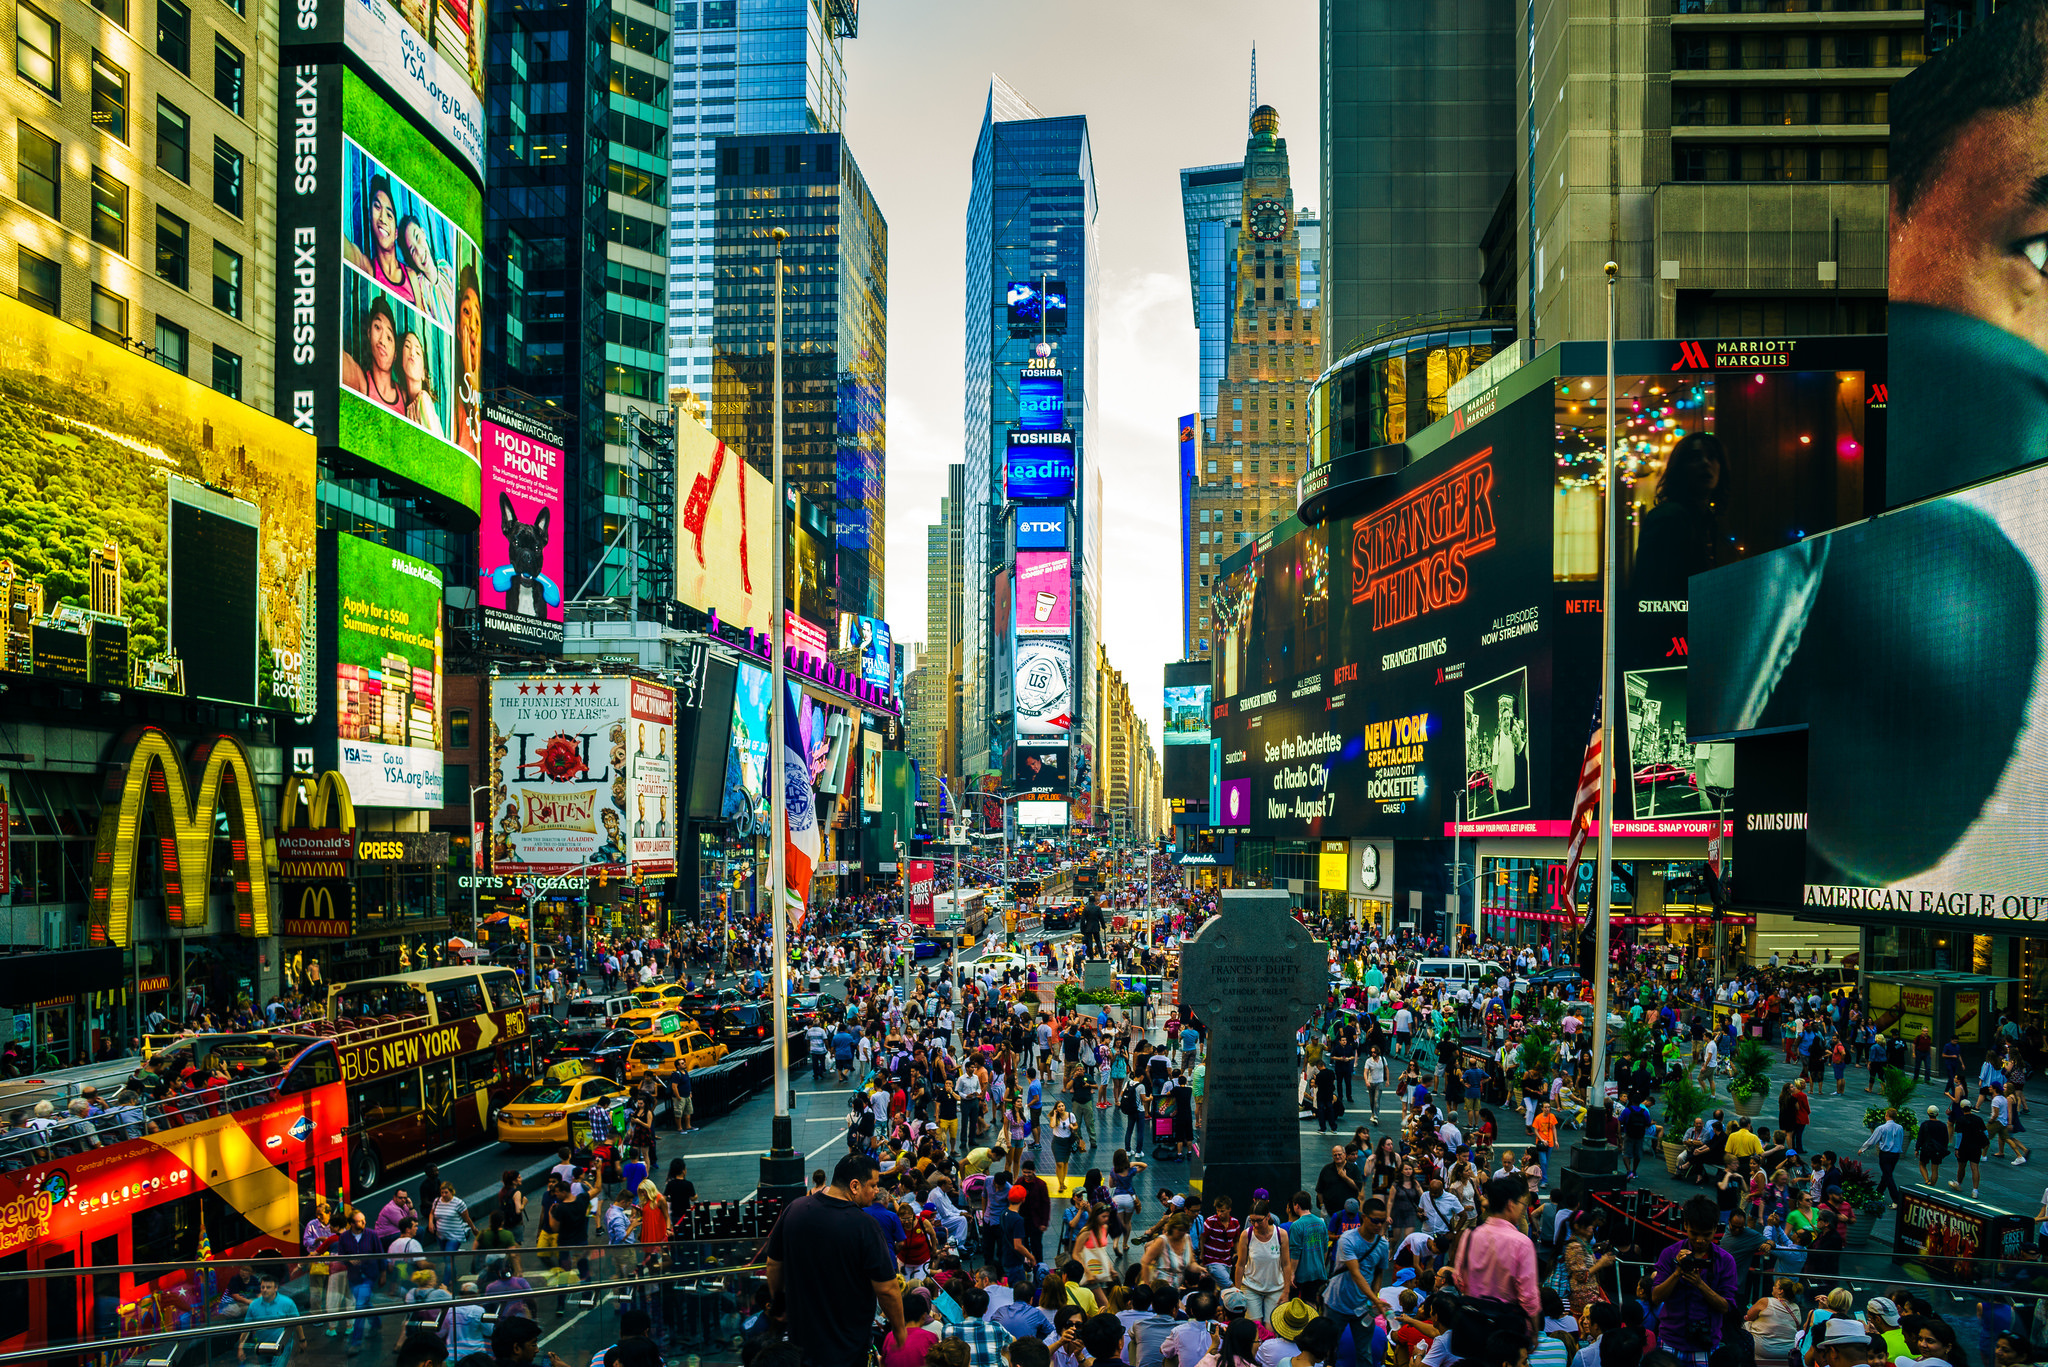 9 times square hd wallpapers backgrounds wallpaper abyss - Times square background ...